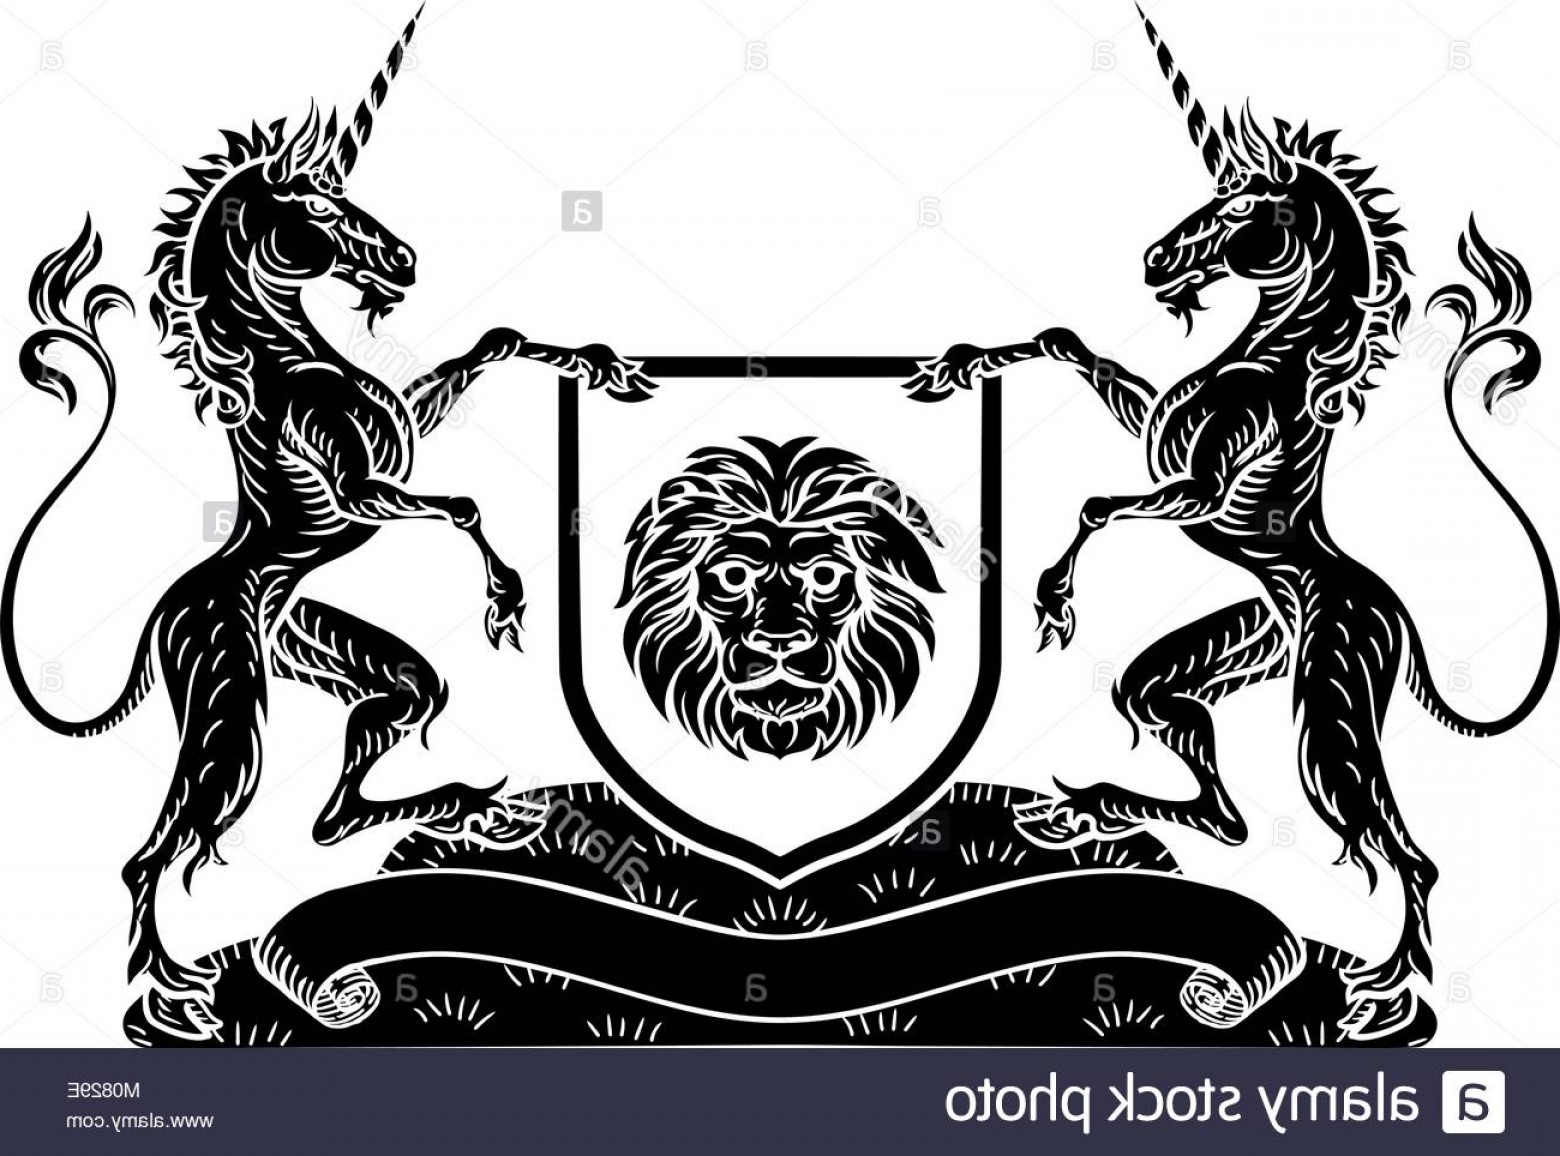 Scotland Heraldic Vector Graphic: Stock Photo Coat Of Arms Emblem Crest Unicorn Shield Heraldic